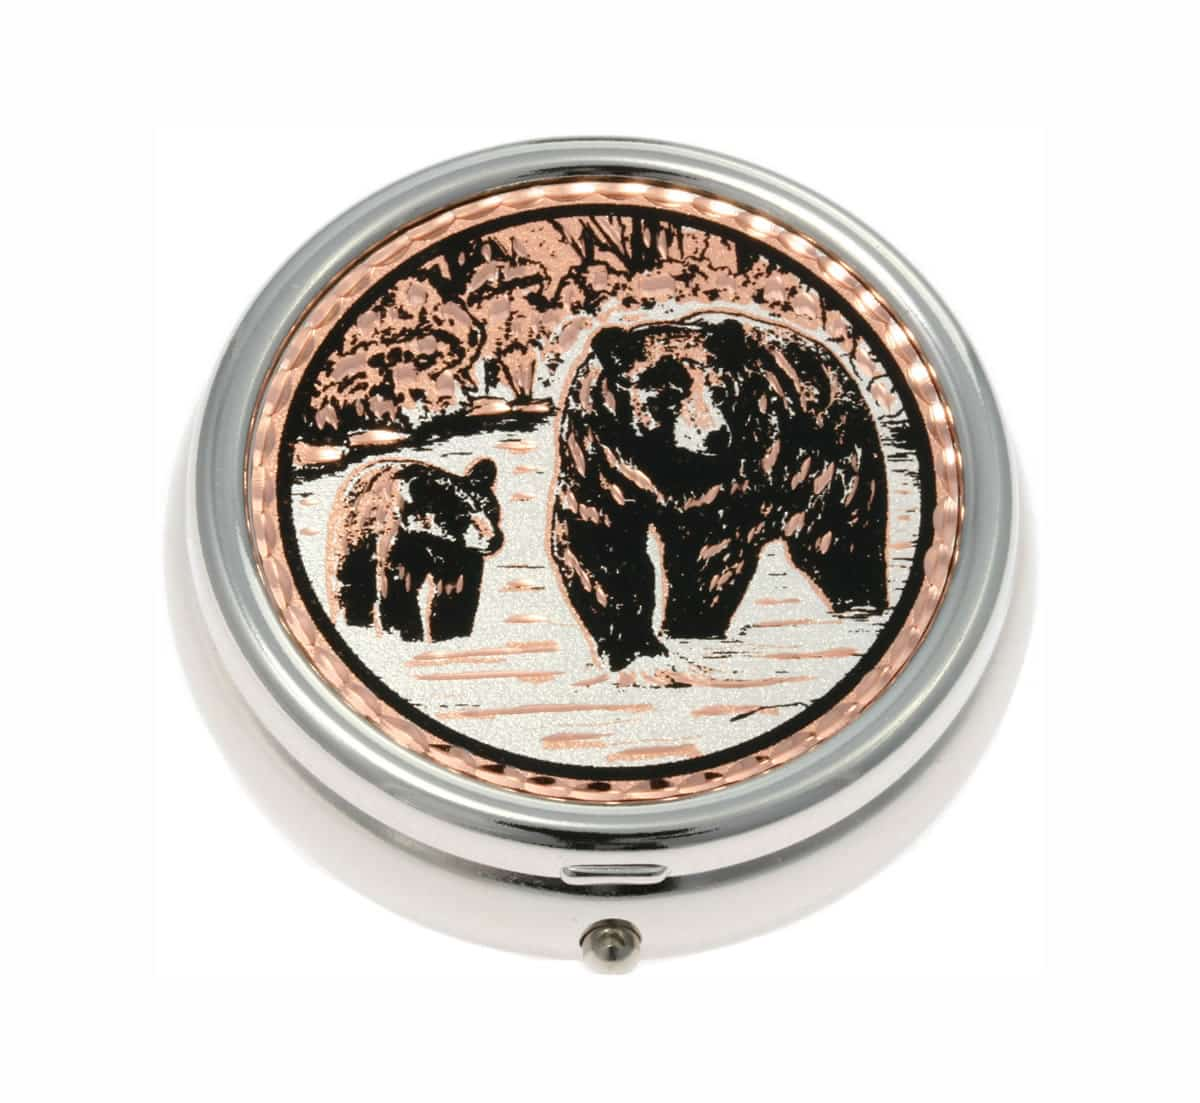 Buy silver plated decorative pill boxes embellished with cub and black bear designs made from copper